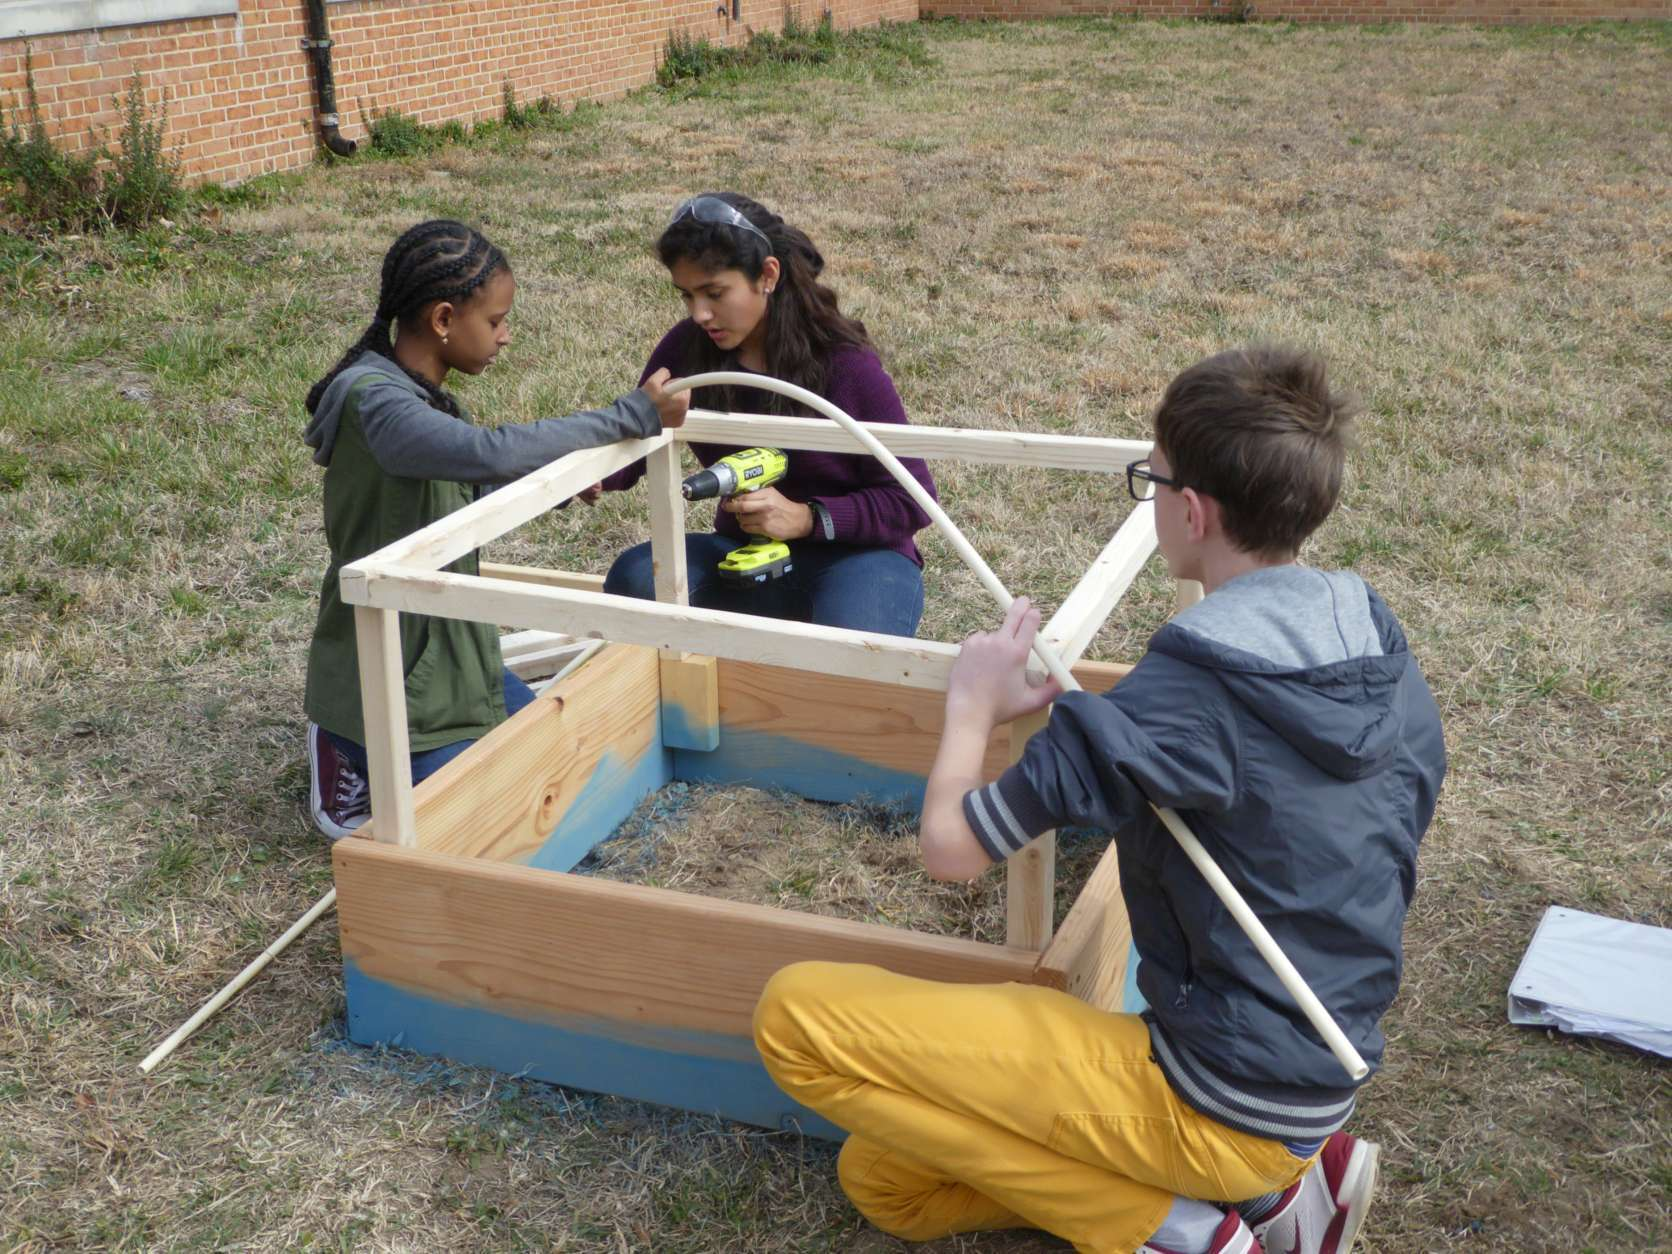 Working on the challenge of solving food insecurity in their community, Edison High students designed and constructed greenhouses and actually grew green peppers. (Courtesy Amol Patel)